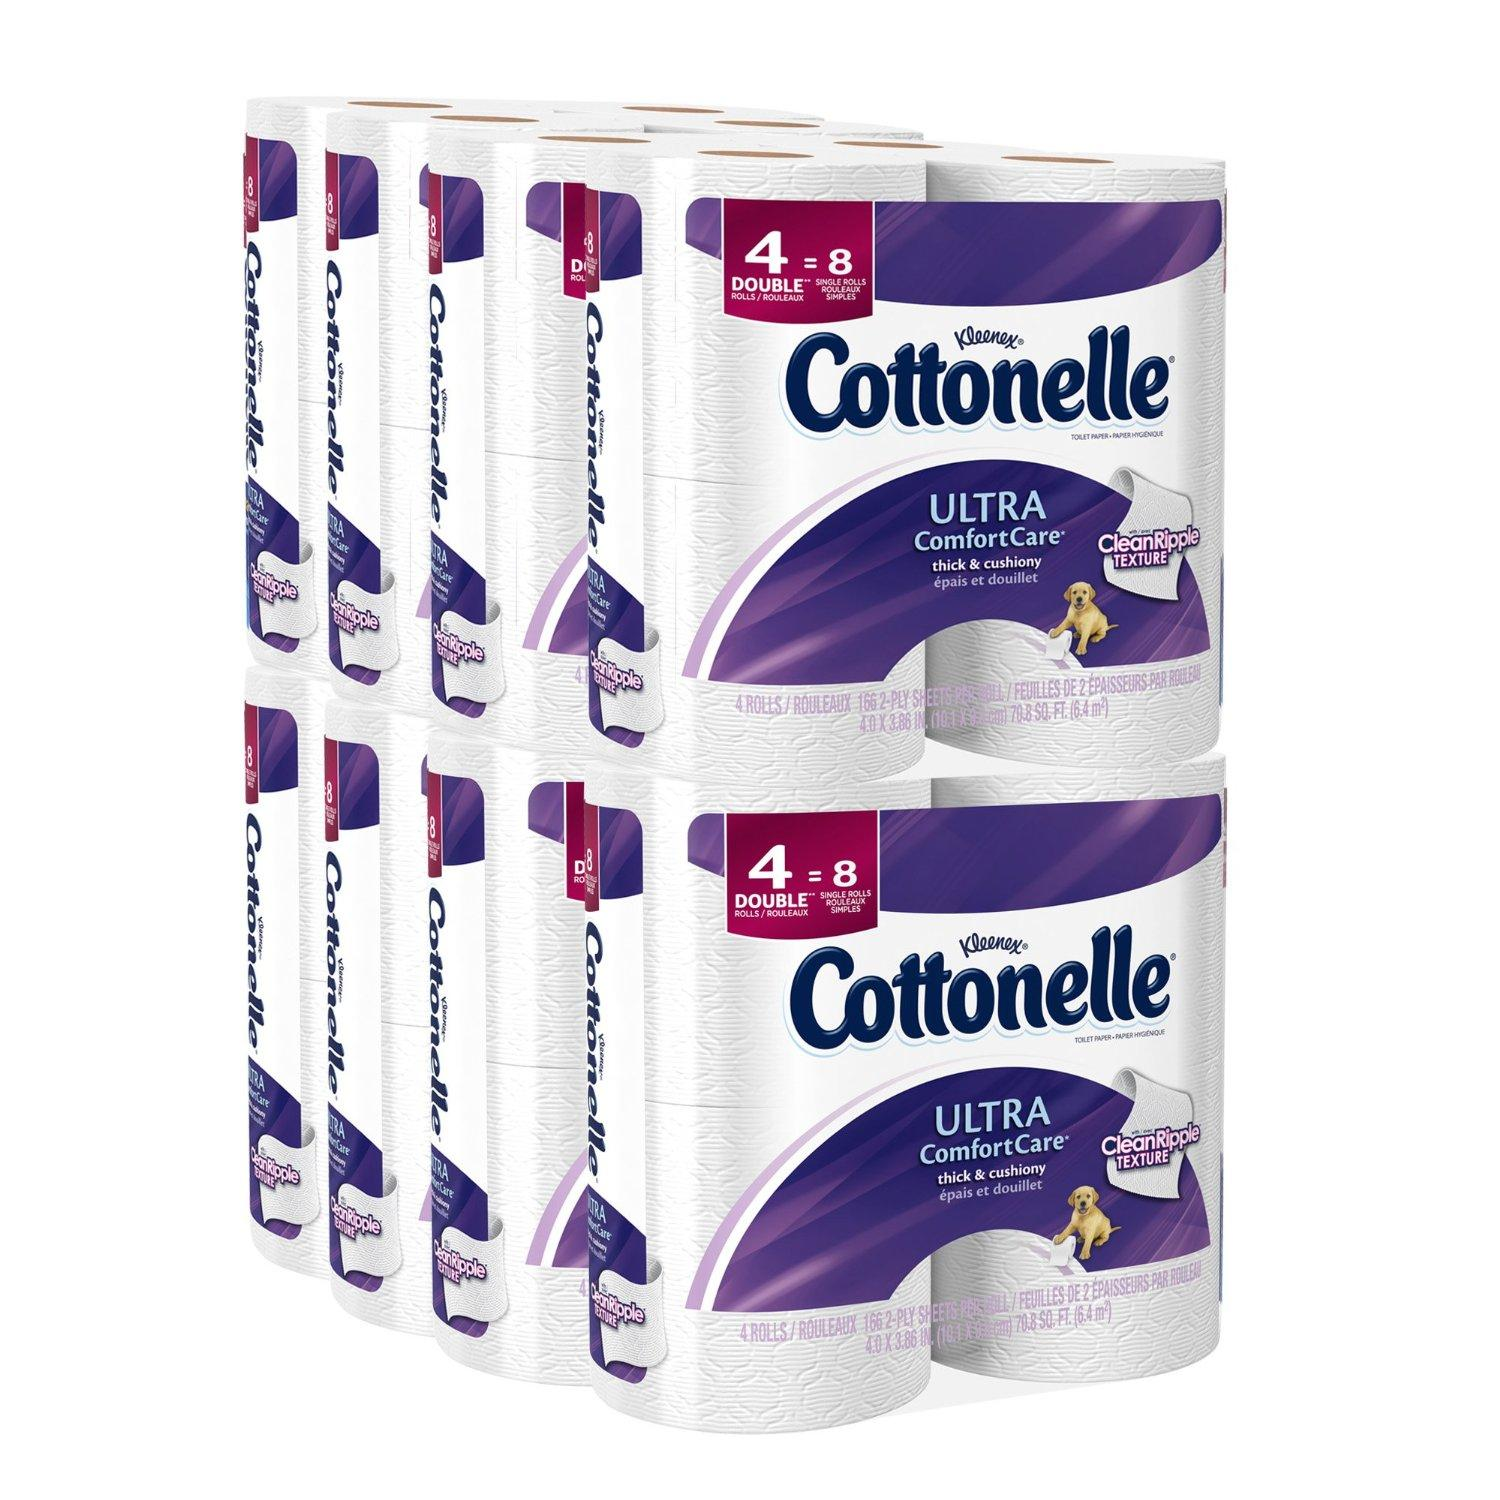 $11.97 Cottonelle Ultra Comfort 卫生纸, Double Roll 32卷